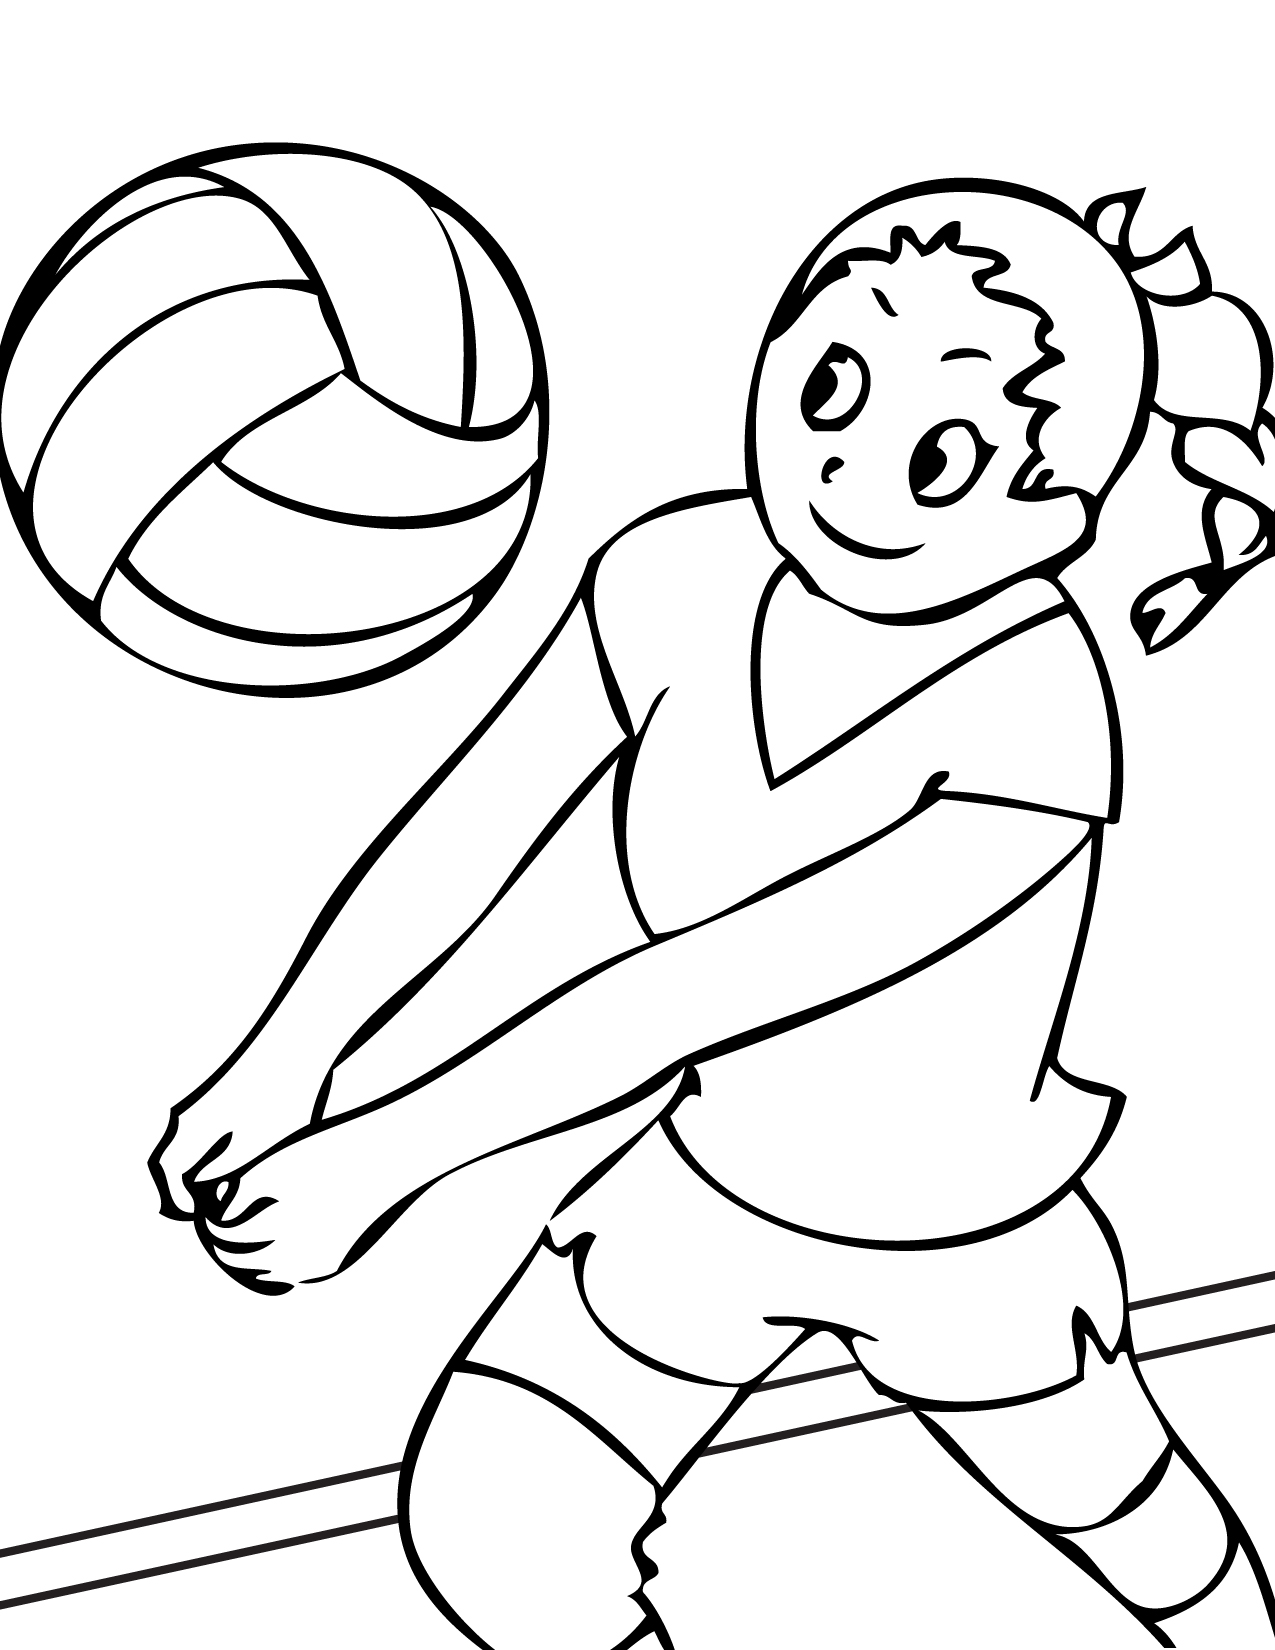 1275x1650 Luxury Softball Coloring Pictures 50 For Your Line Drawings